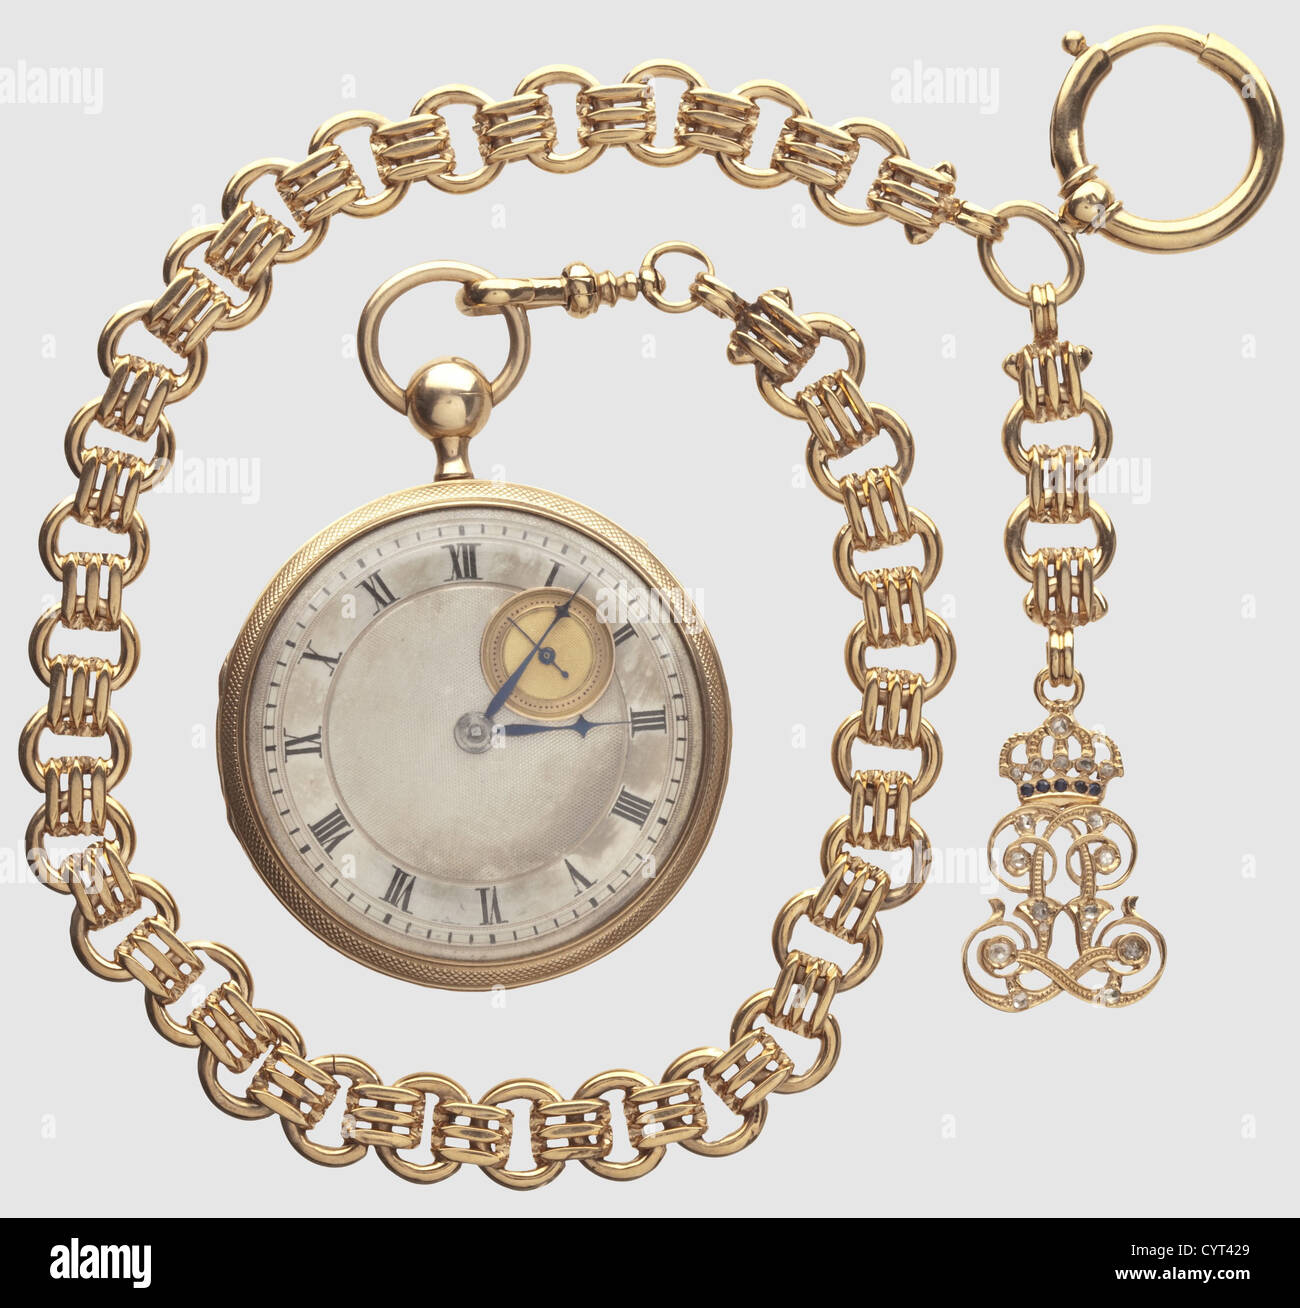 King Maximilian II (1811 - 1864) - King Ludwig II (1845 - 1886), a golden repeater watch with watch ch historic, - Stock Image